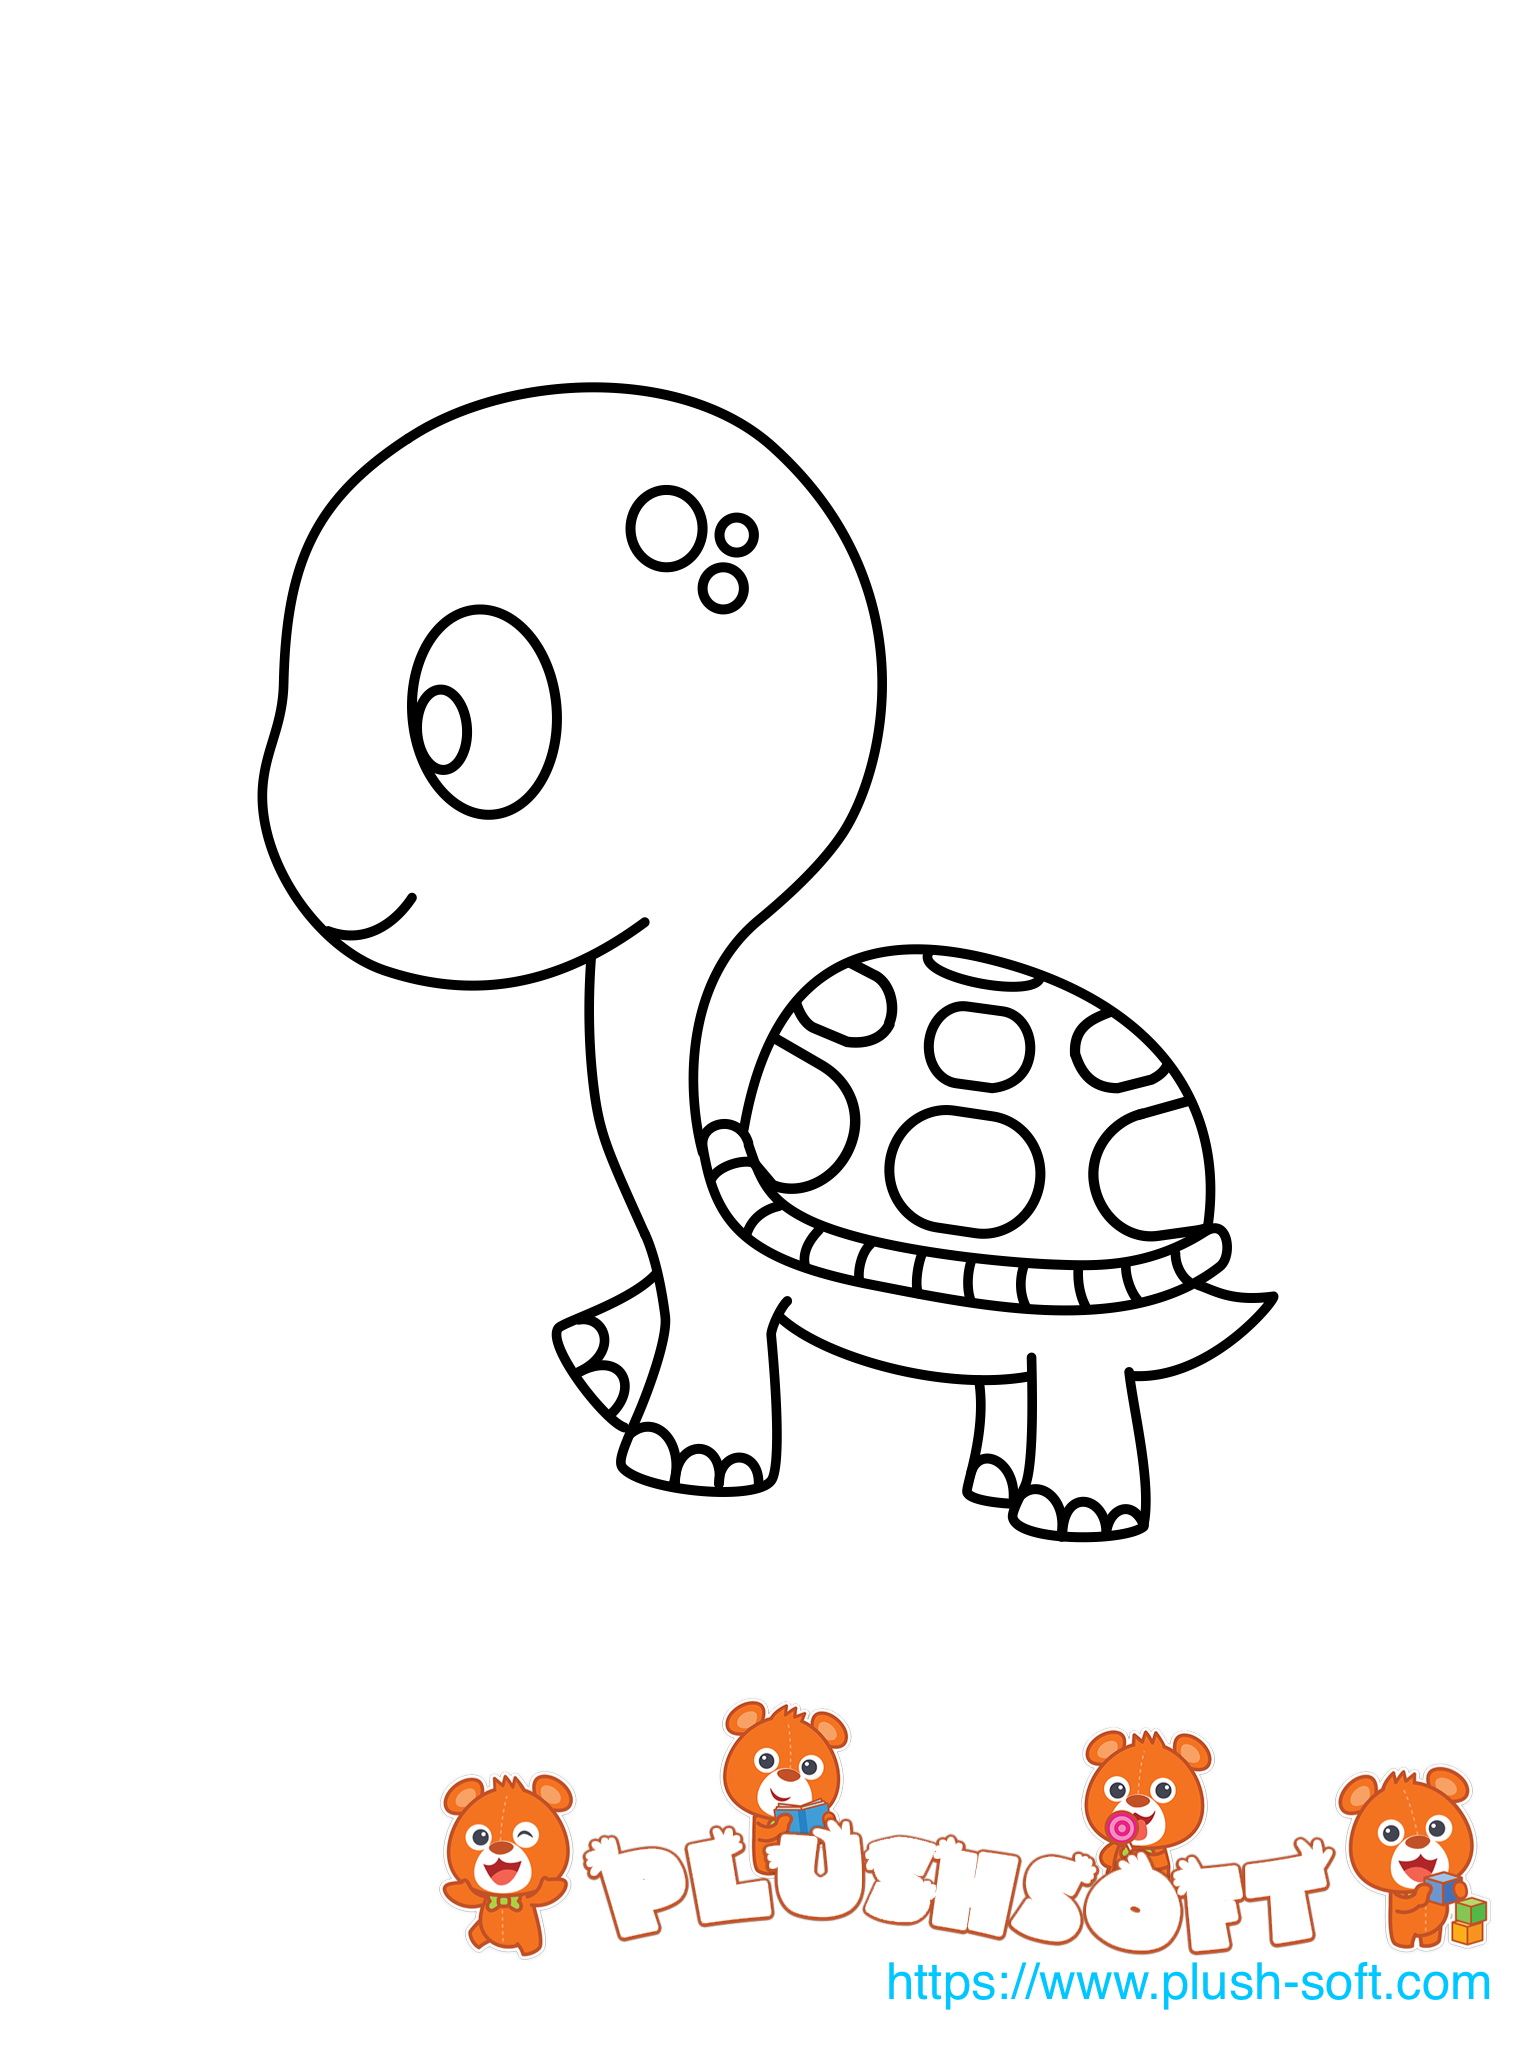 Printable coloring page a cute turtle for your kids to color